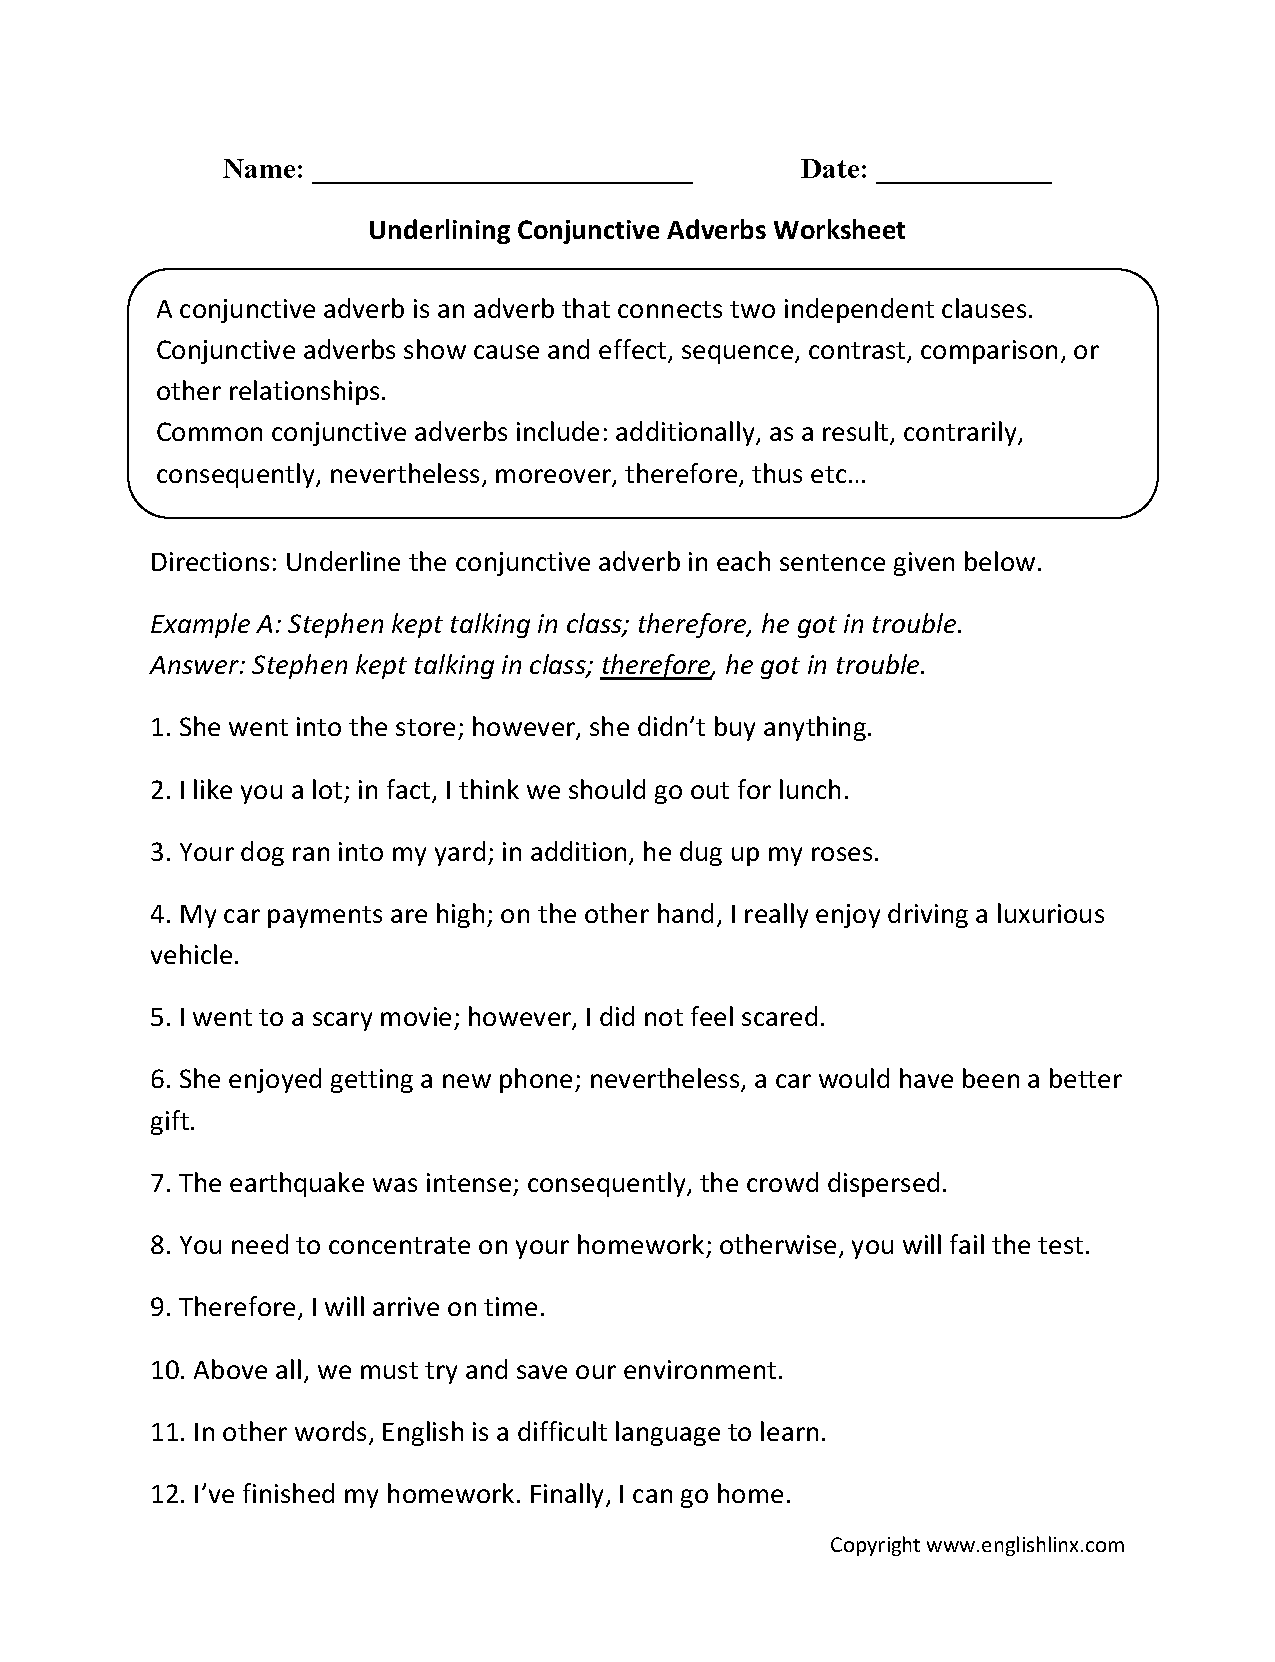 Aldiablosus  Inspiring Englishlinxcom  Conjunctions Worksheets With Engaging Worksheet With Beauteous In The Worksheet Also English Worksheet Grade  In Addition Math Worksheets For Grade  Free Printable And Zoo Animals Worksheet As Well As Label Human Skeleton Worksheet Additionally Appositive Phrase Practice Worksheet From Englishlinxcom With Aldiablosus  Engaging Englishlinxcom  Conjunctions Worksheets With Beauteous Worksheet And Inspiring In The Worksheet Also English Worksheet Grade  In Addition Math Worksheets For Grade  Free Printable From Englishlinxcom